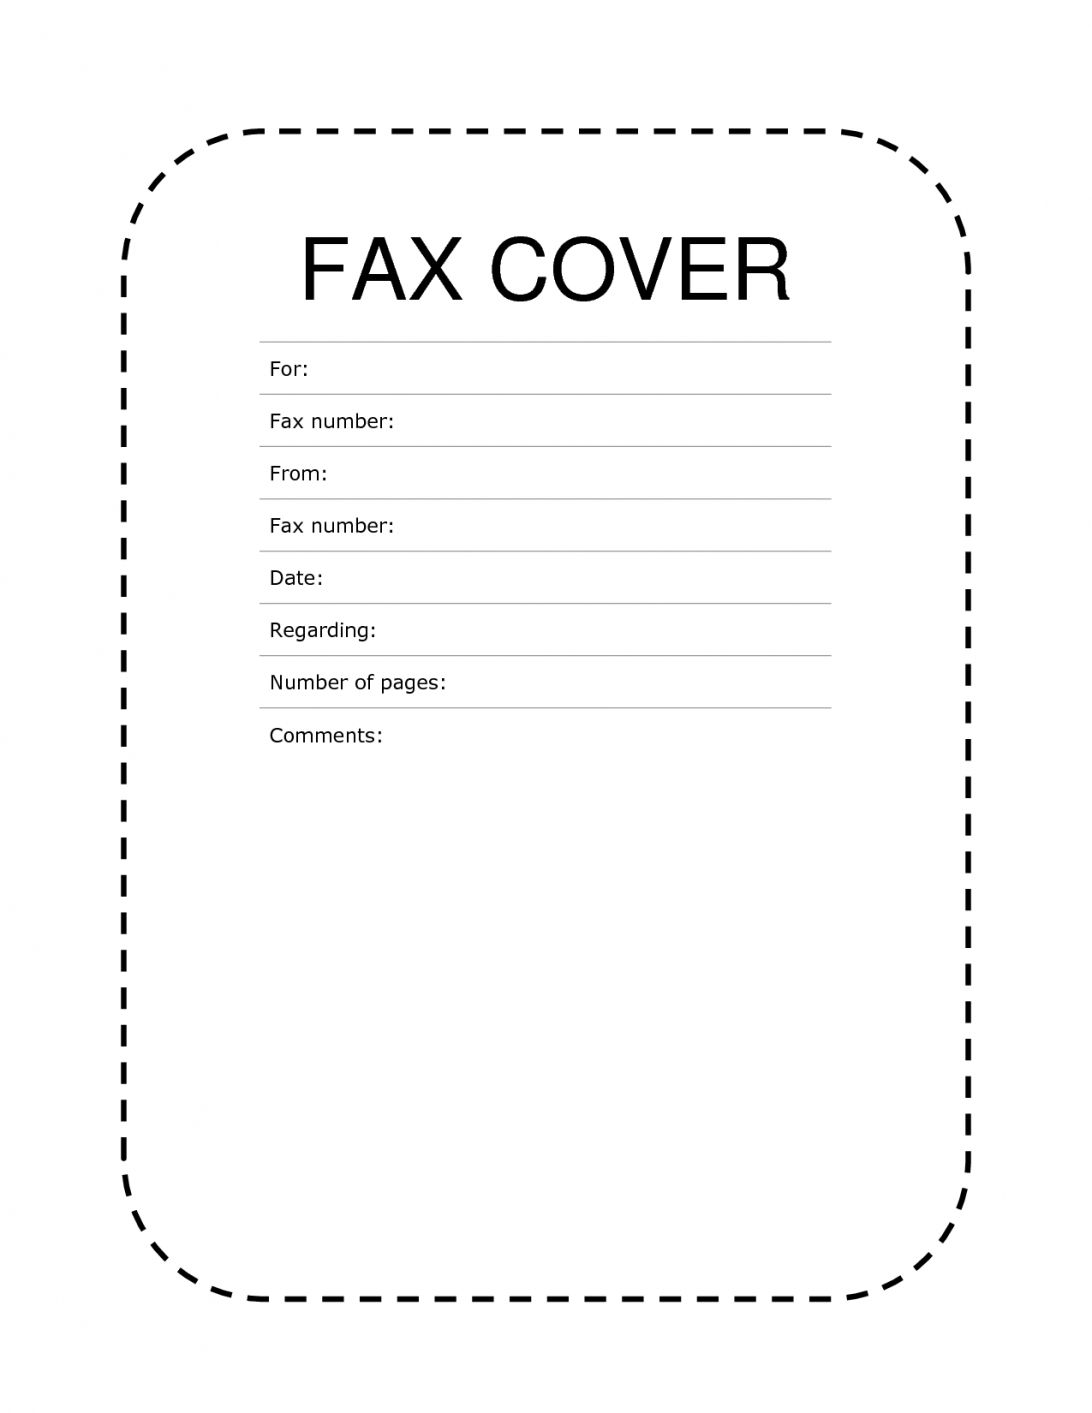 Fax Sheet Template Word With Fax Cover Sheet Template Word 2010